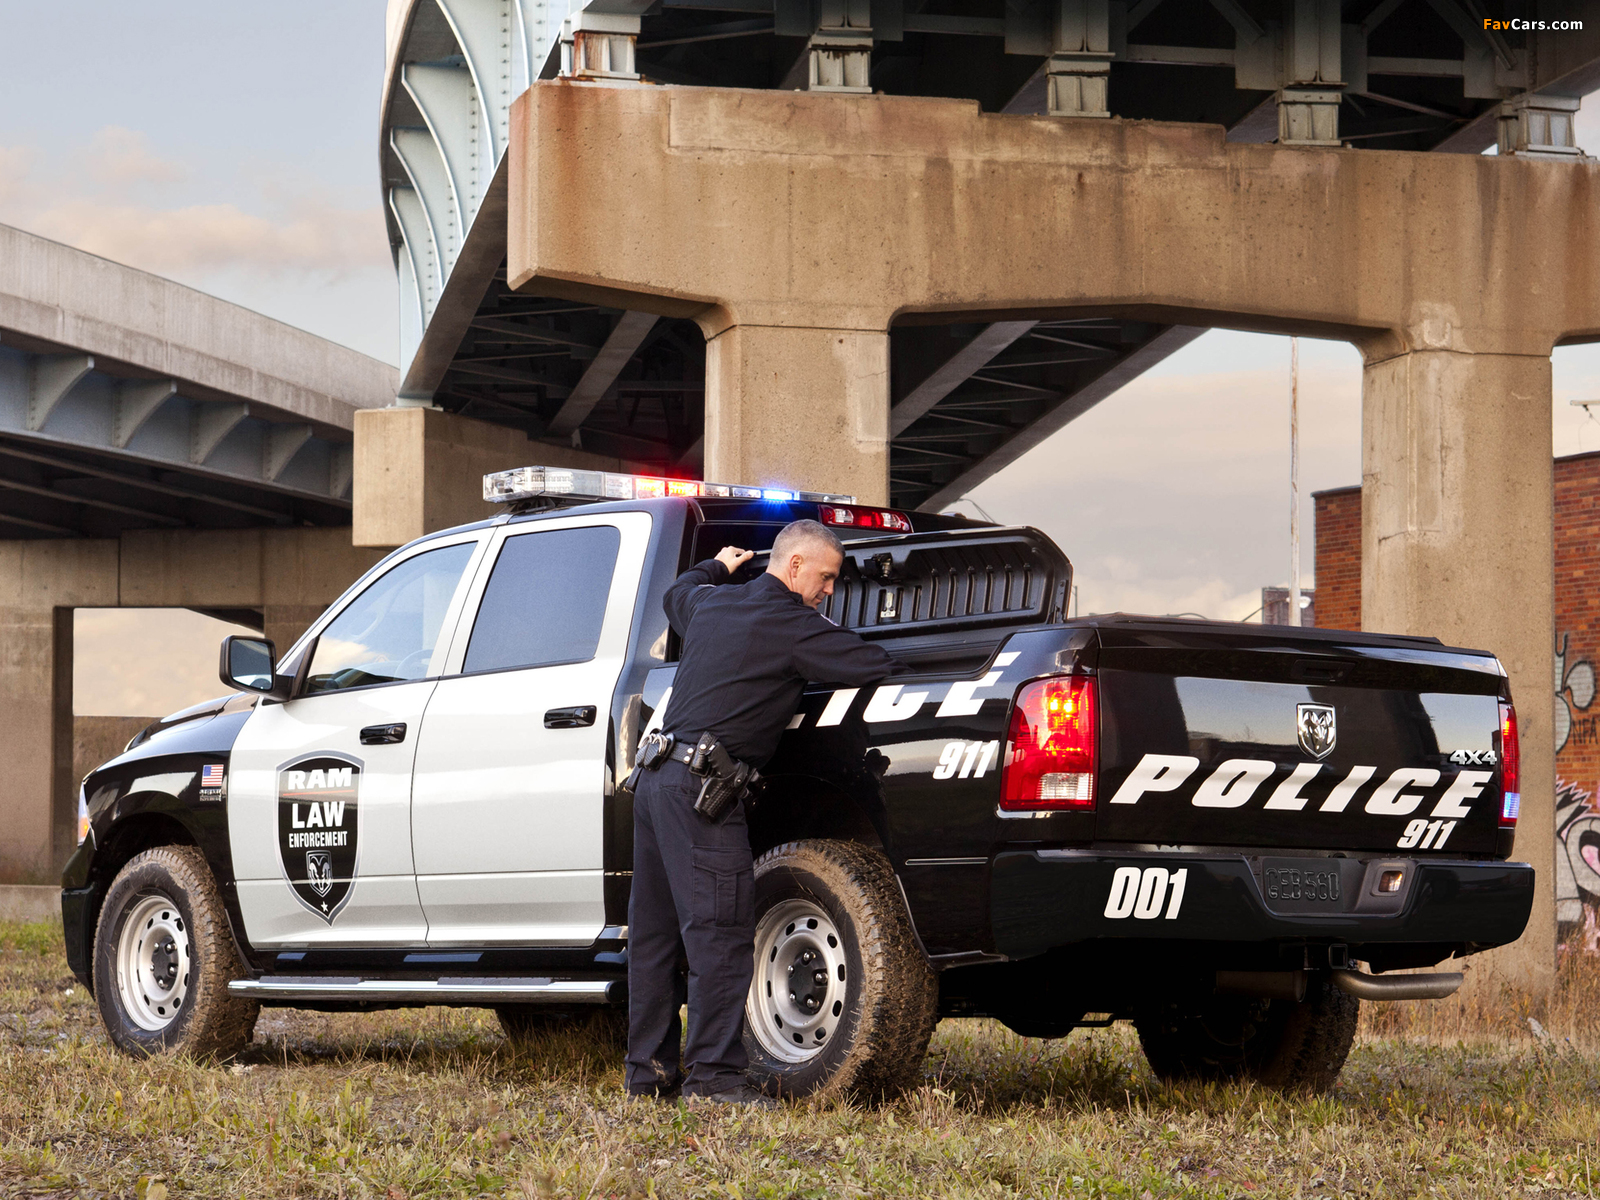 Ram 1500 Crew Cab Special Service Package Police Truck 2011 pictures (1600 x 1200)